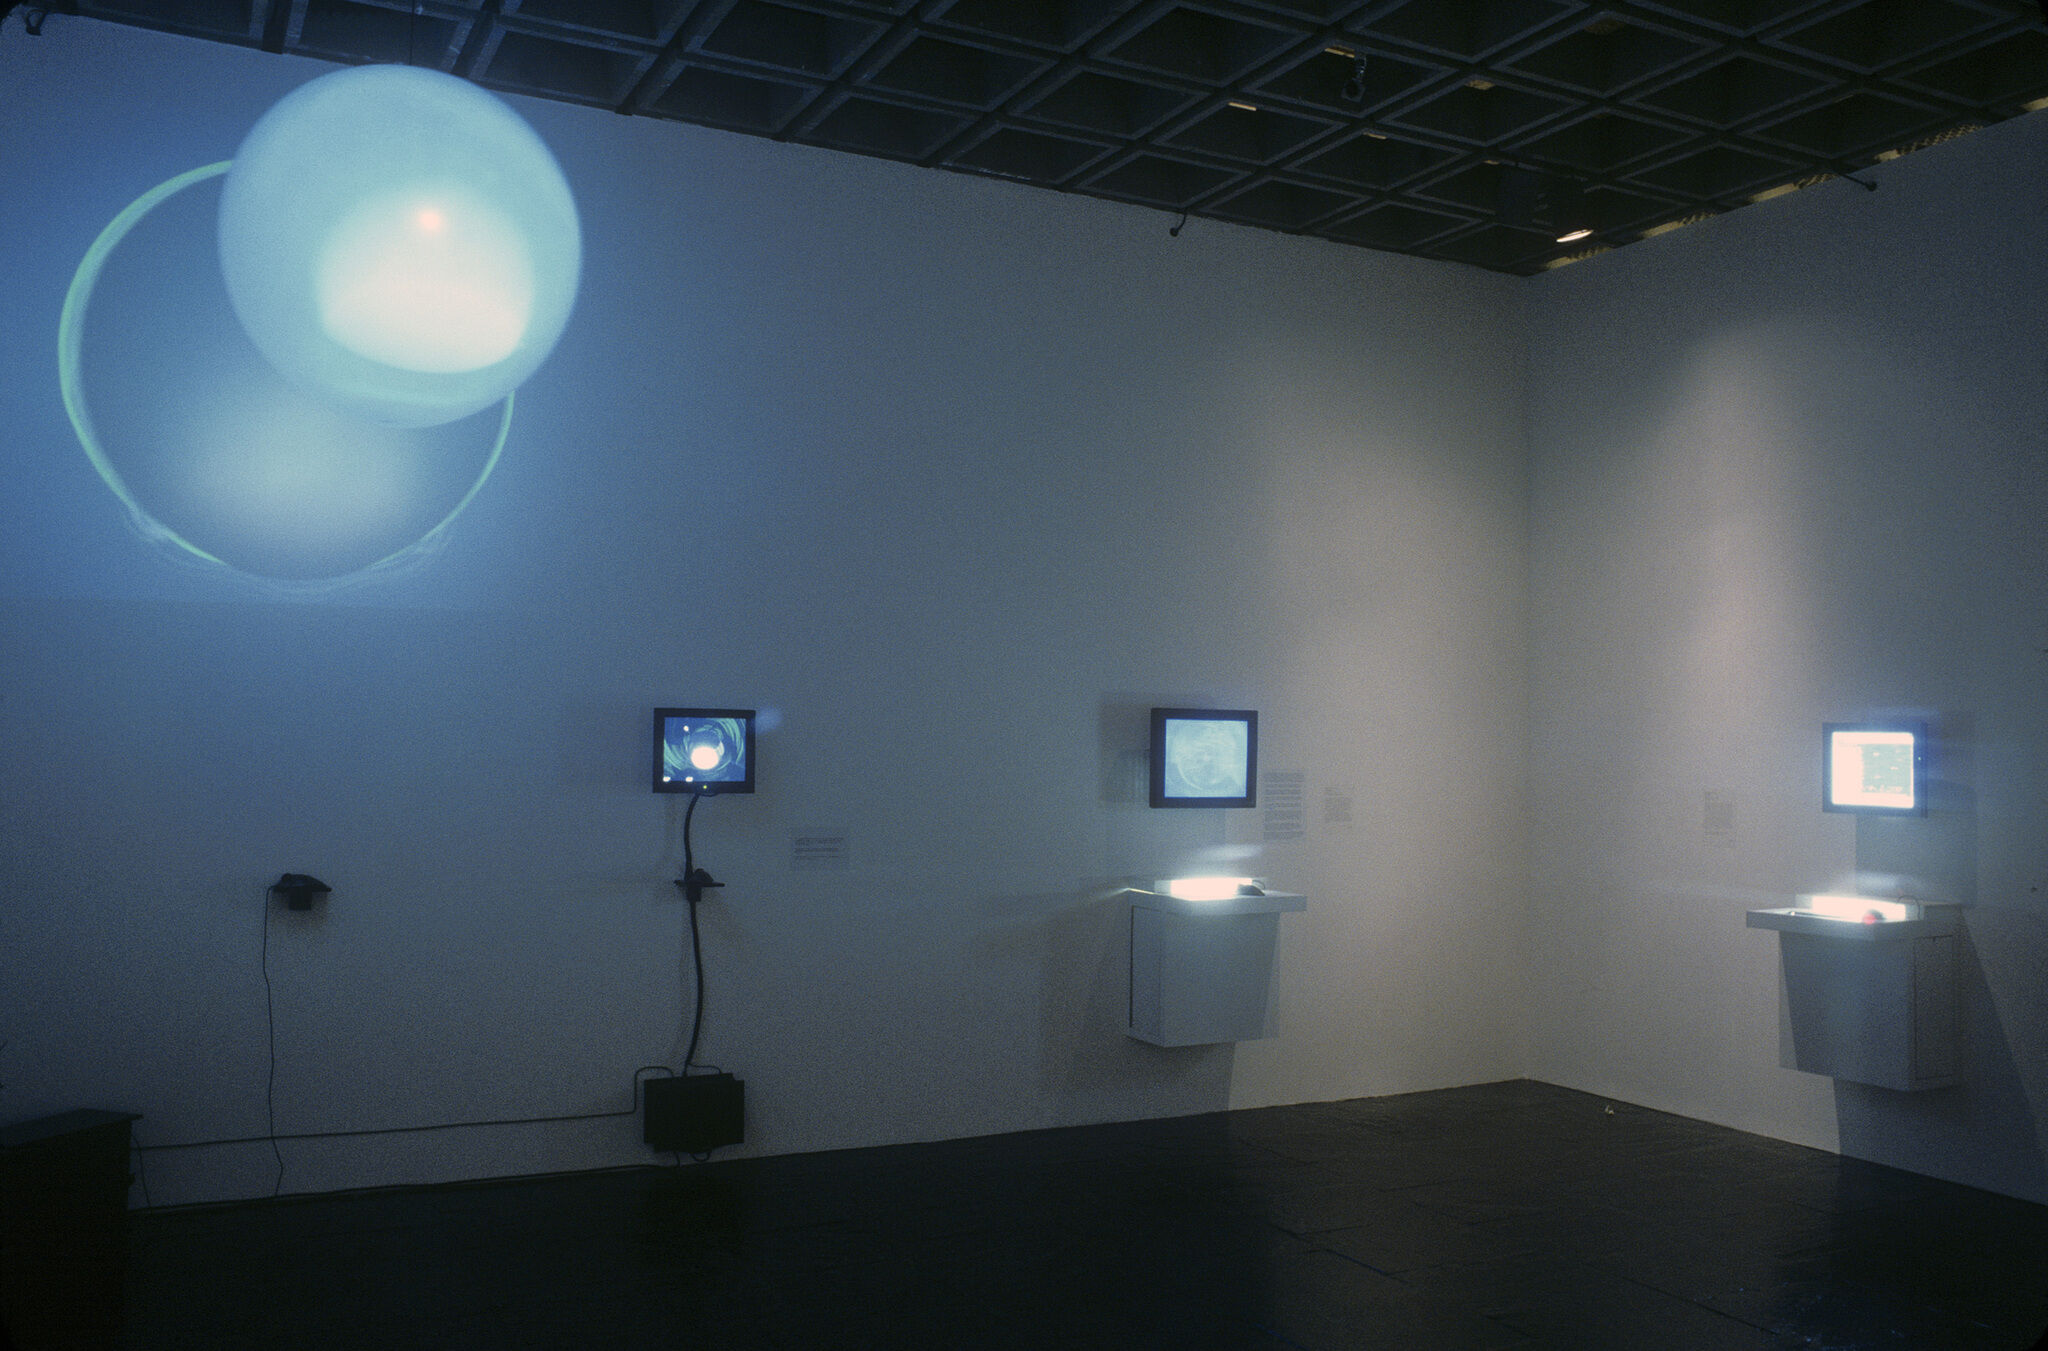 A gallery with a blue-hued video projection, along with monitors mounted on the walls.